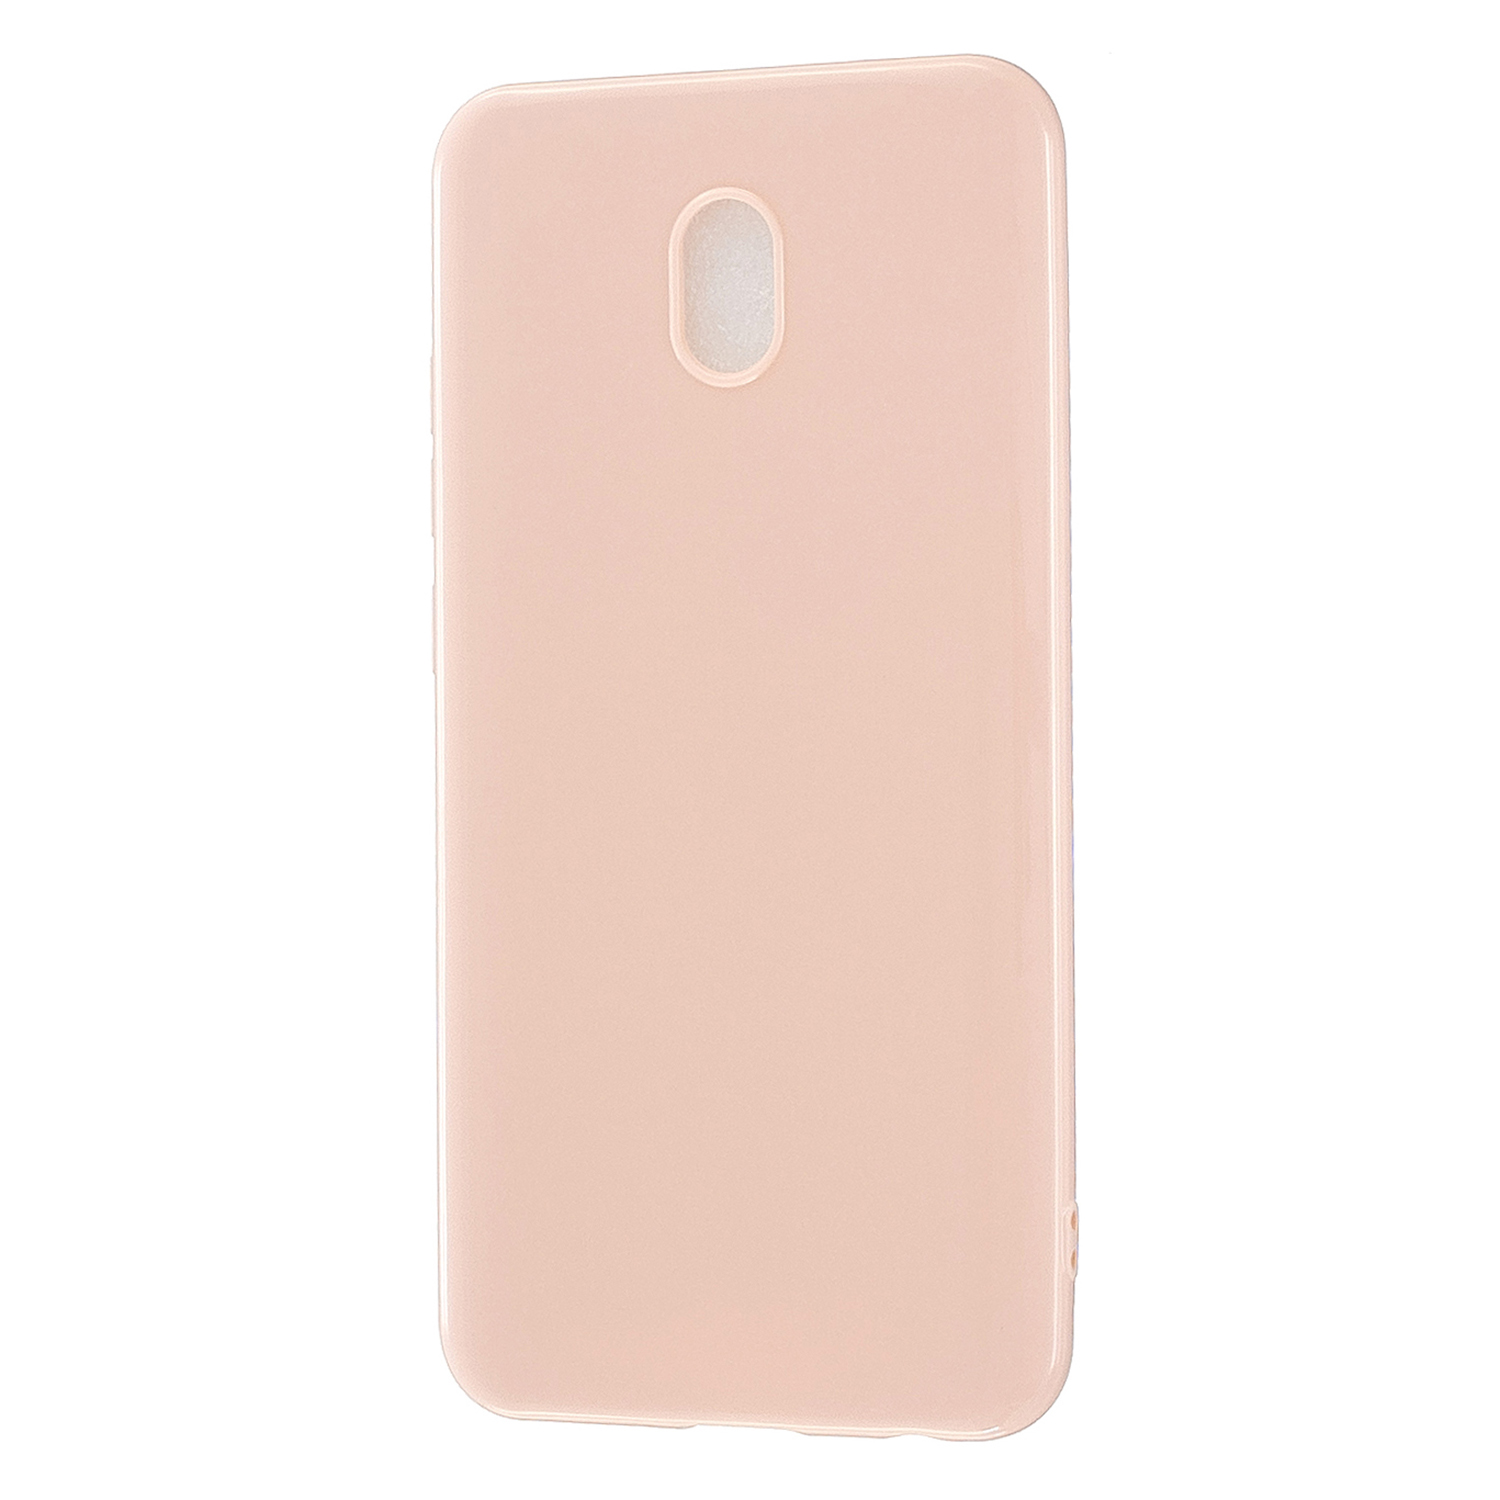 For Redmi 8 / Redmi 8A Cellphone Cover Glossy TPU Phone Case Defender Full Body Protection Smartphone Shell Sakura pink